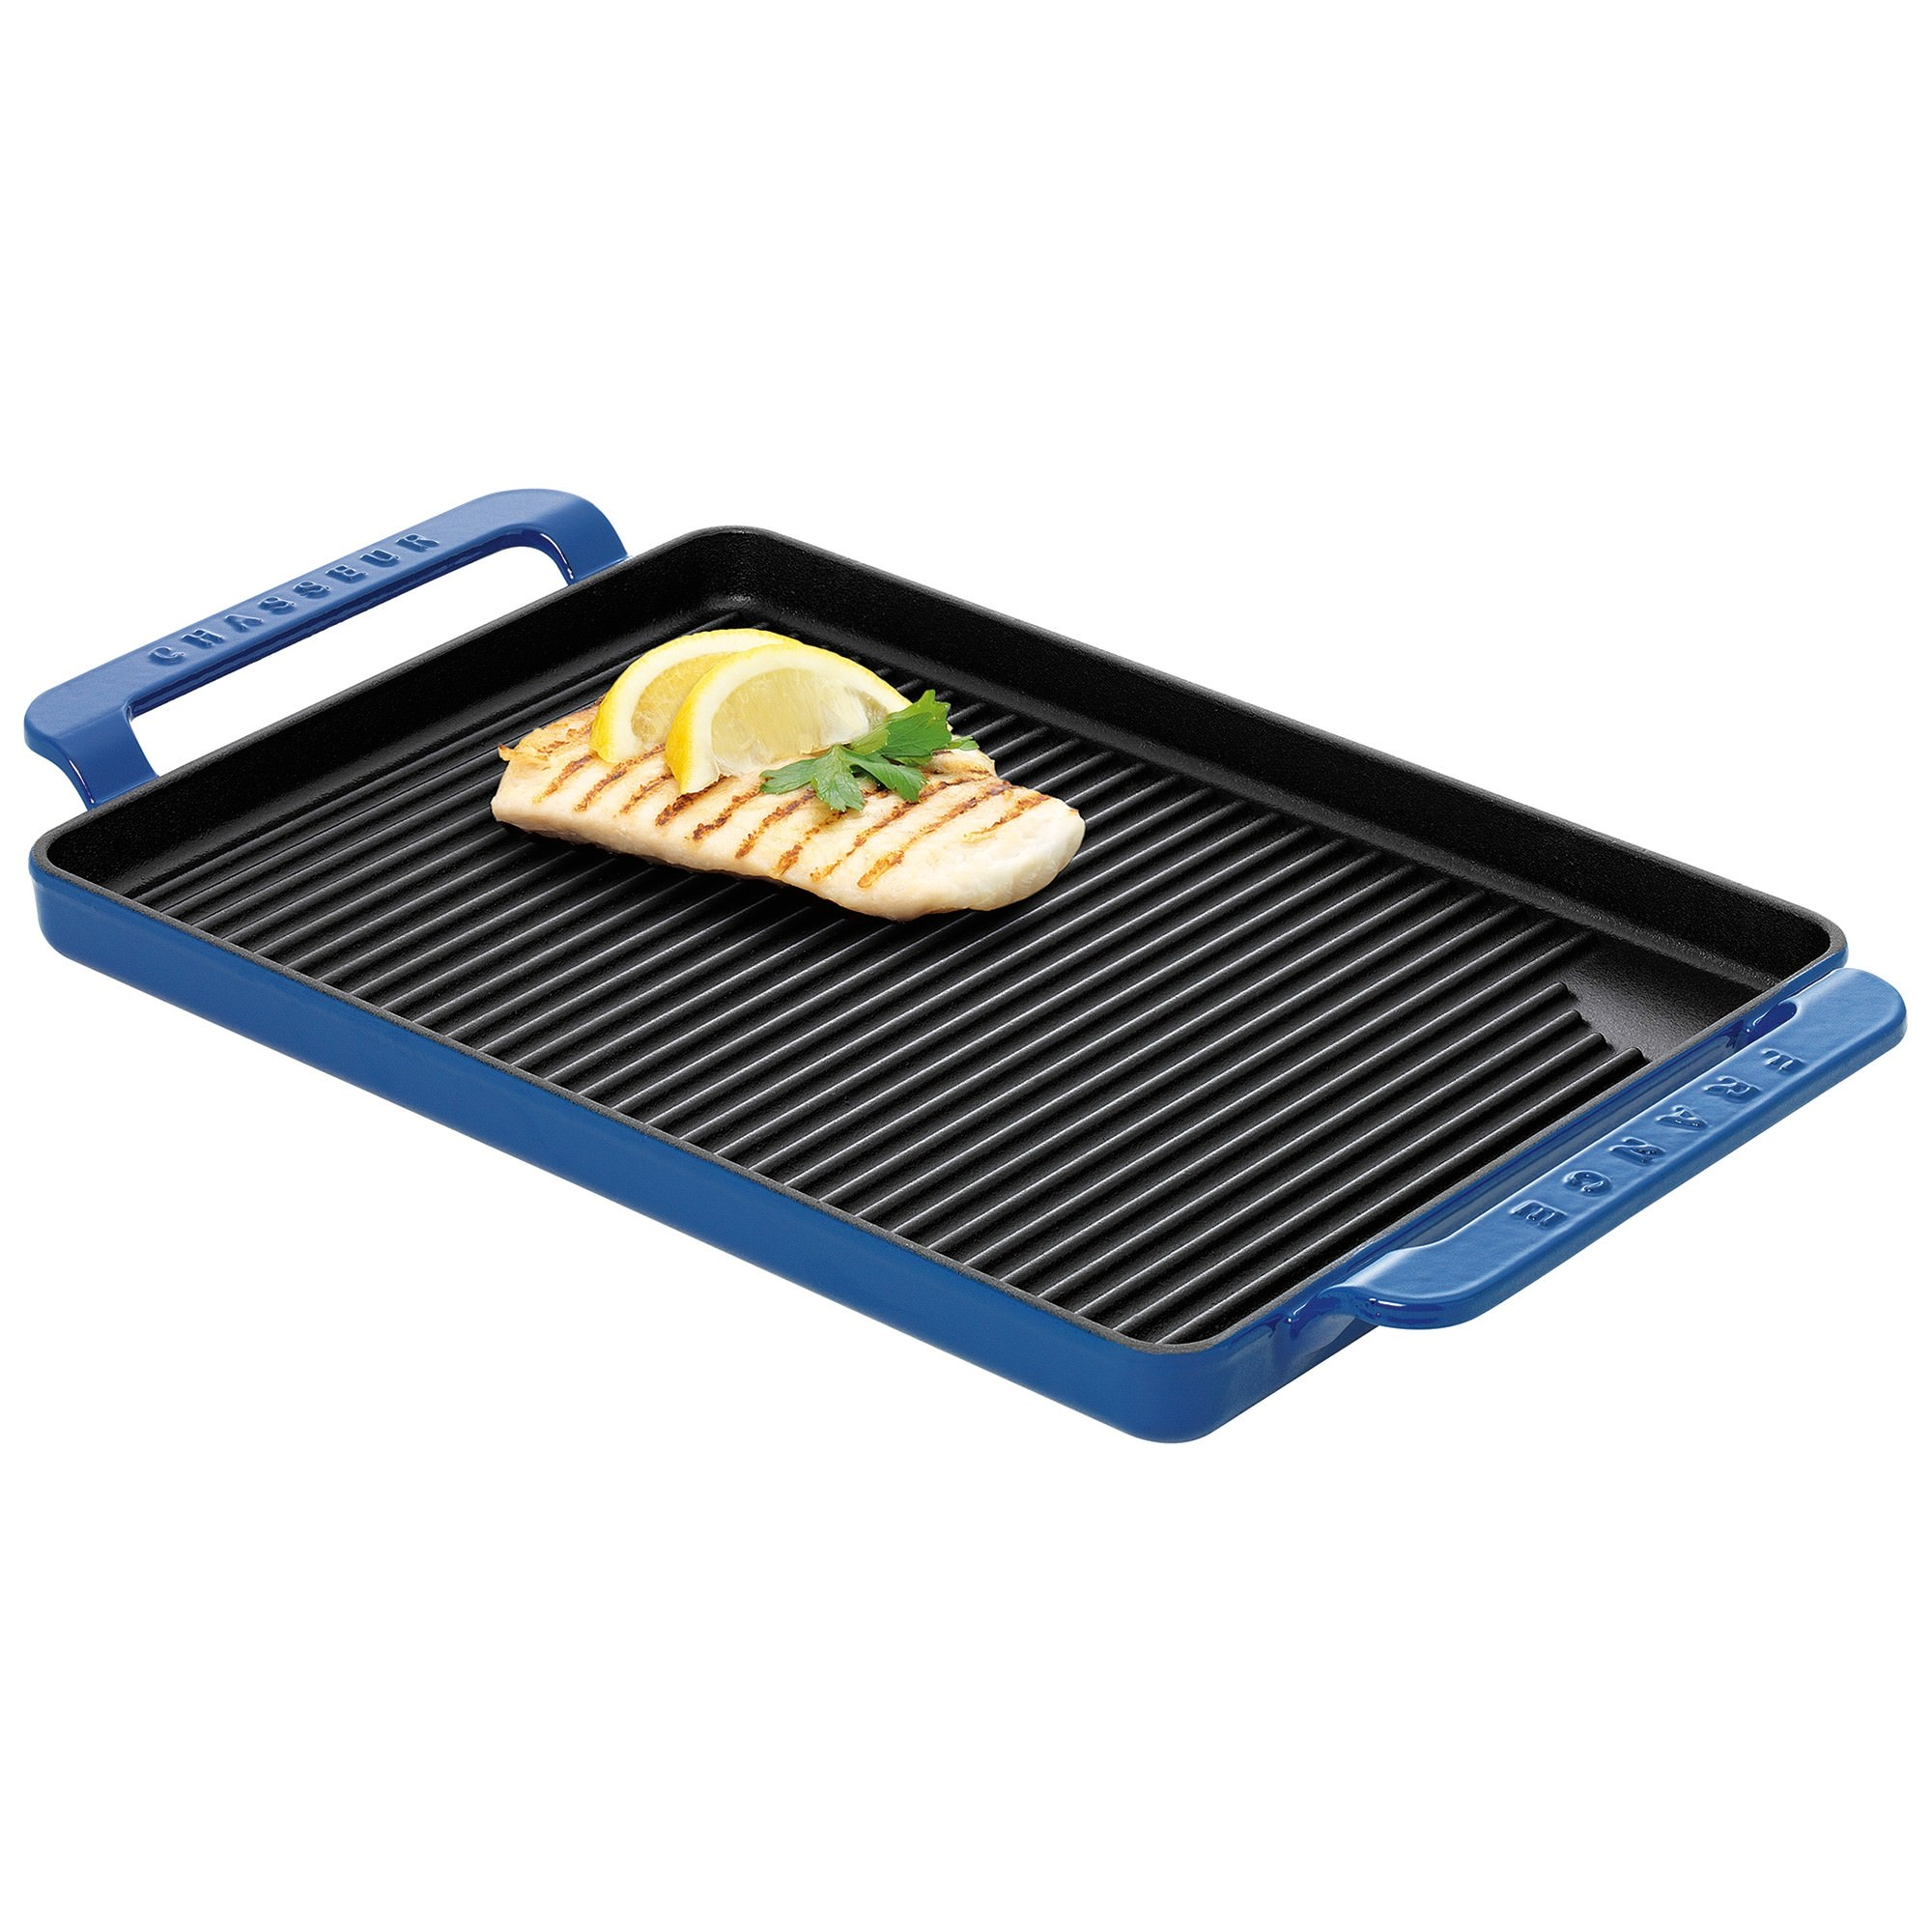 Chasseur Cast Iron Rectangular Grill, 42x24cm, Sky Blue